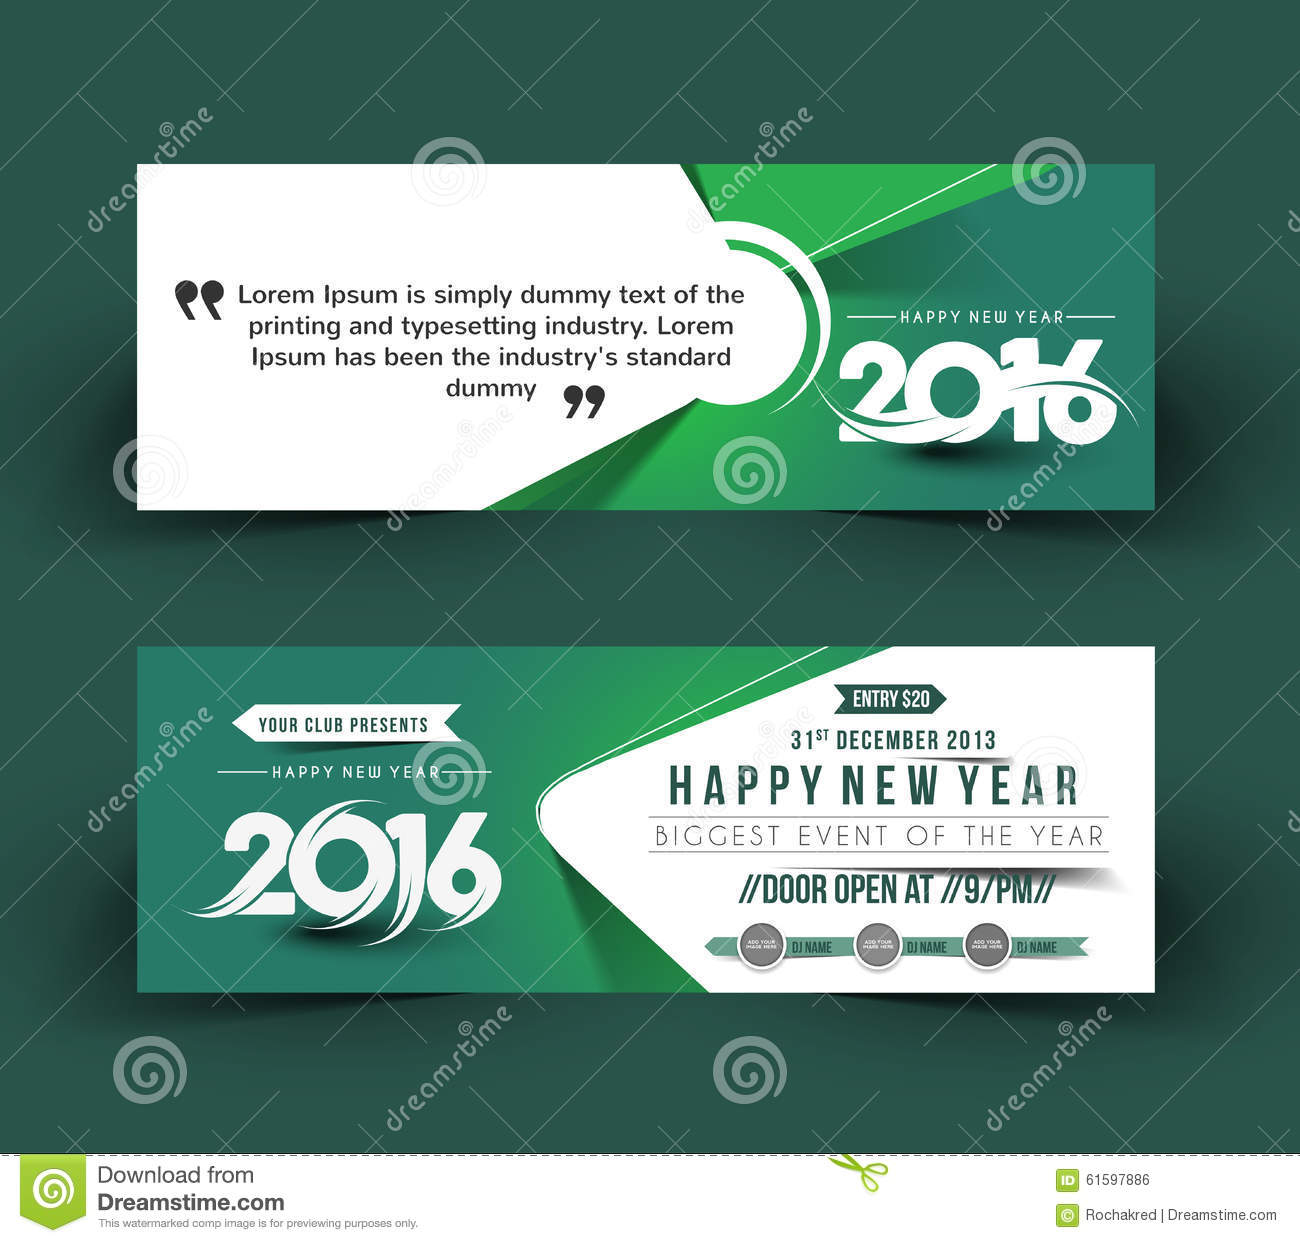 new year 2016 website banner